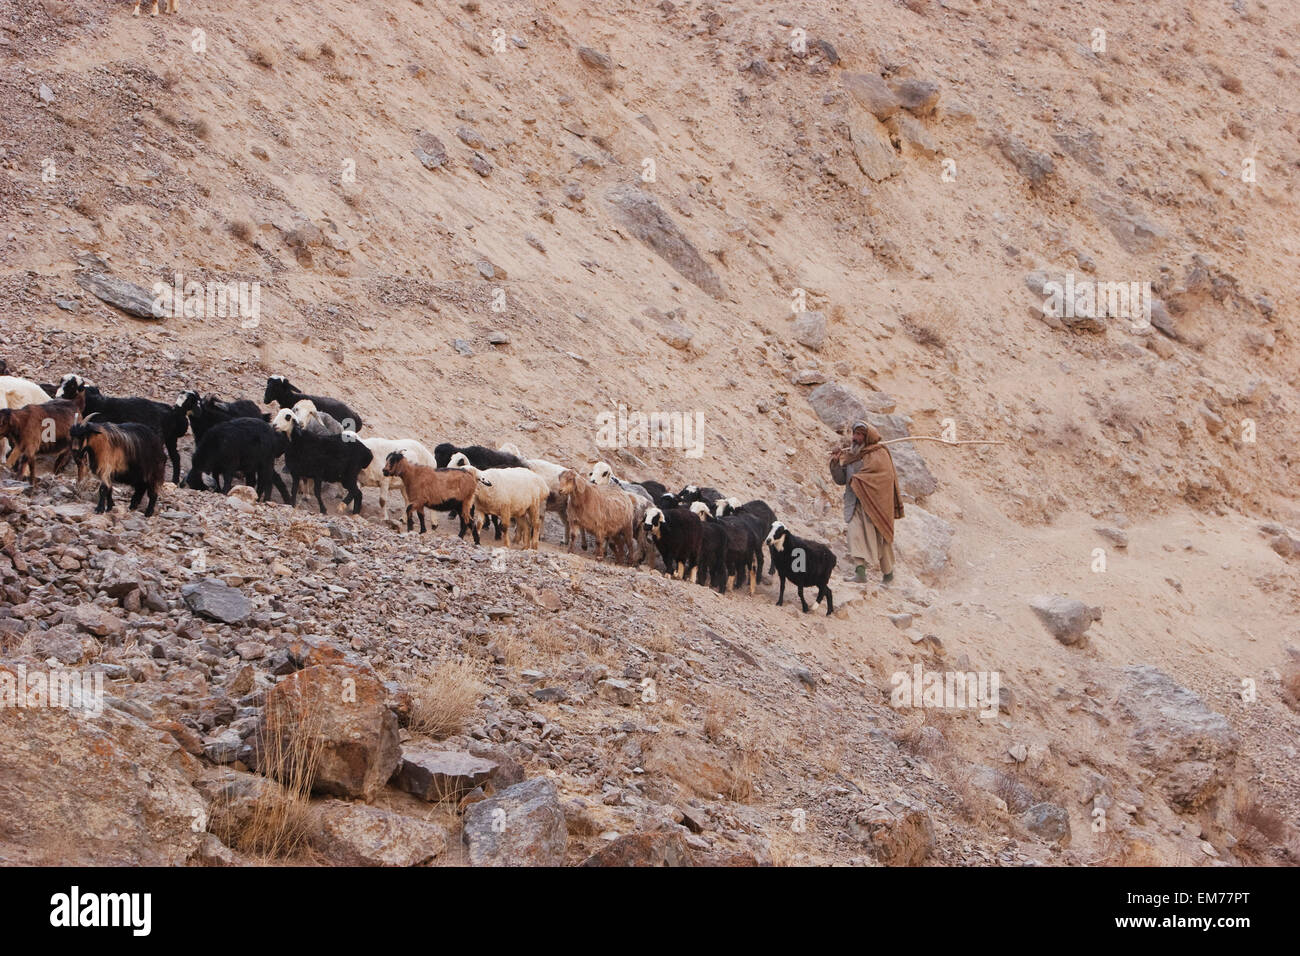 the relationship of shepherd and his flock